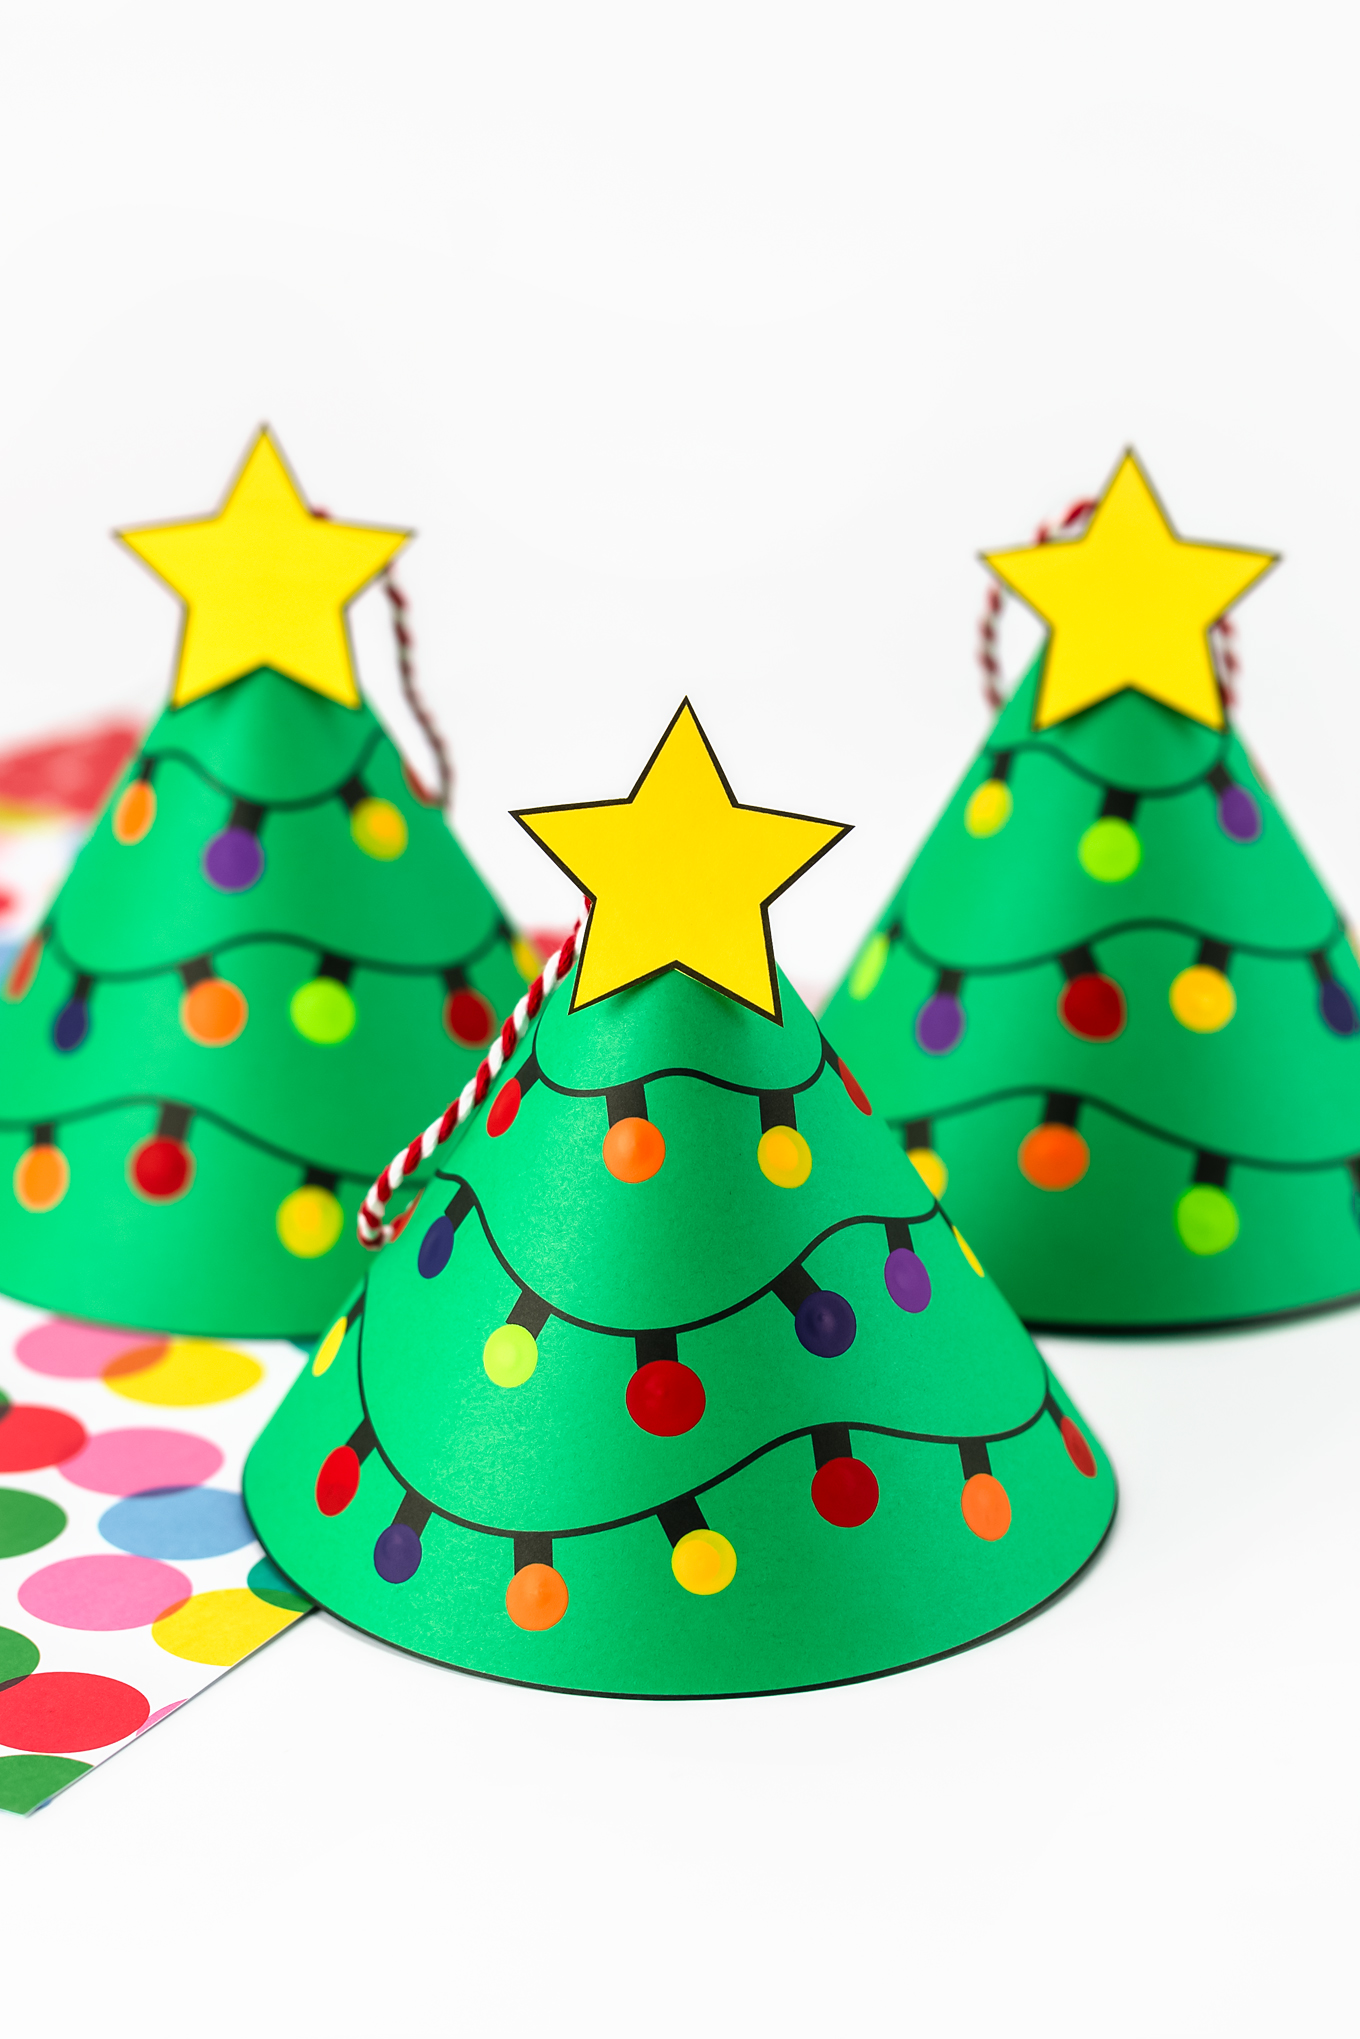 Best Paper Christmas Tree Craft for Kids